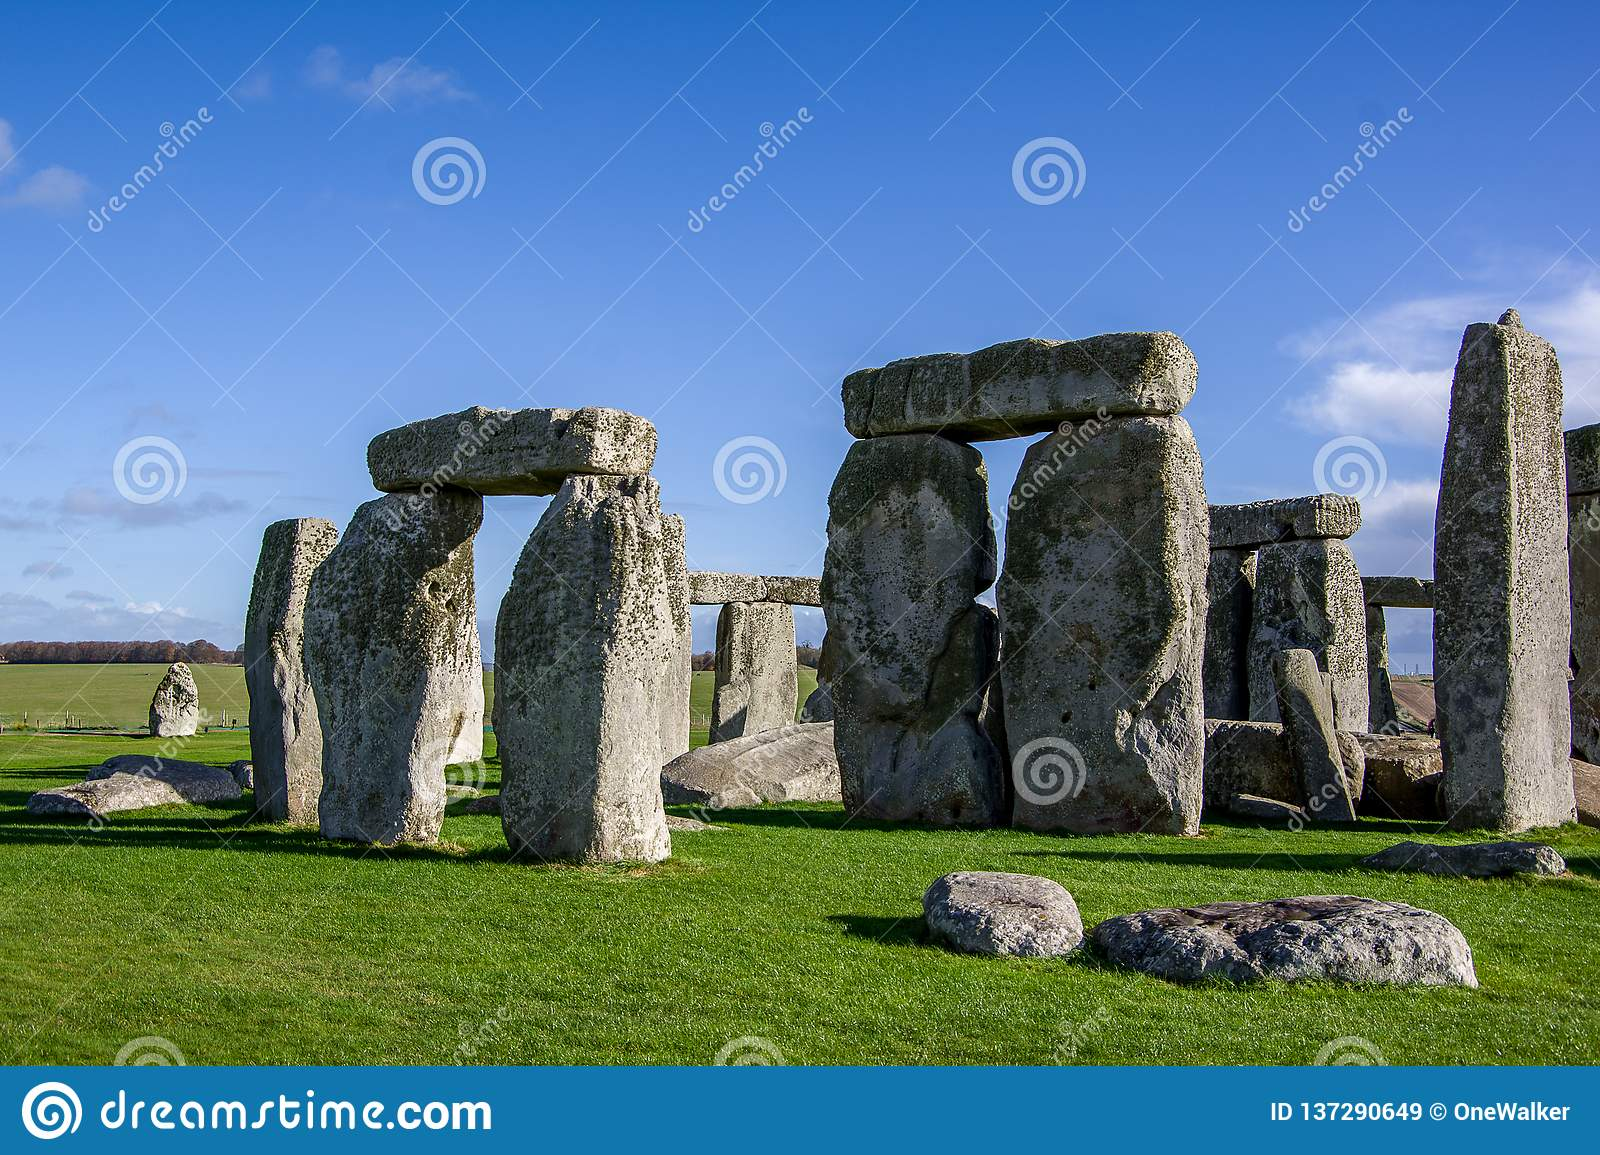 Close up view of Stonehenge monument.